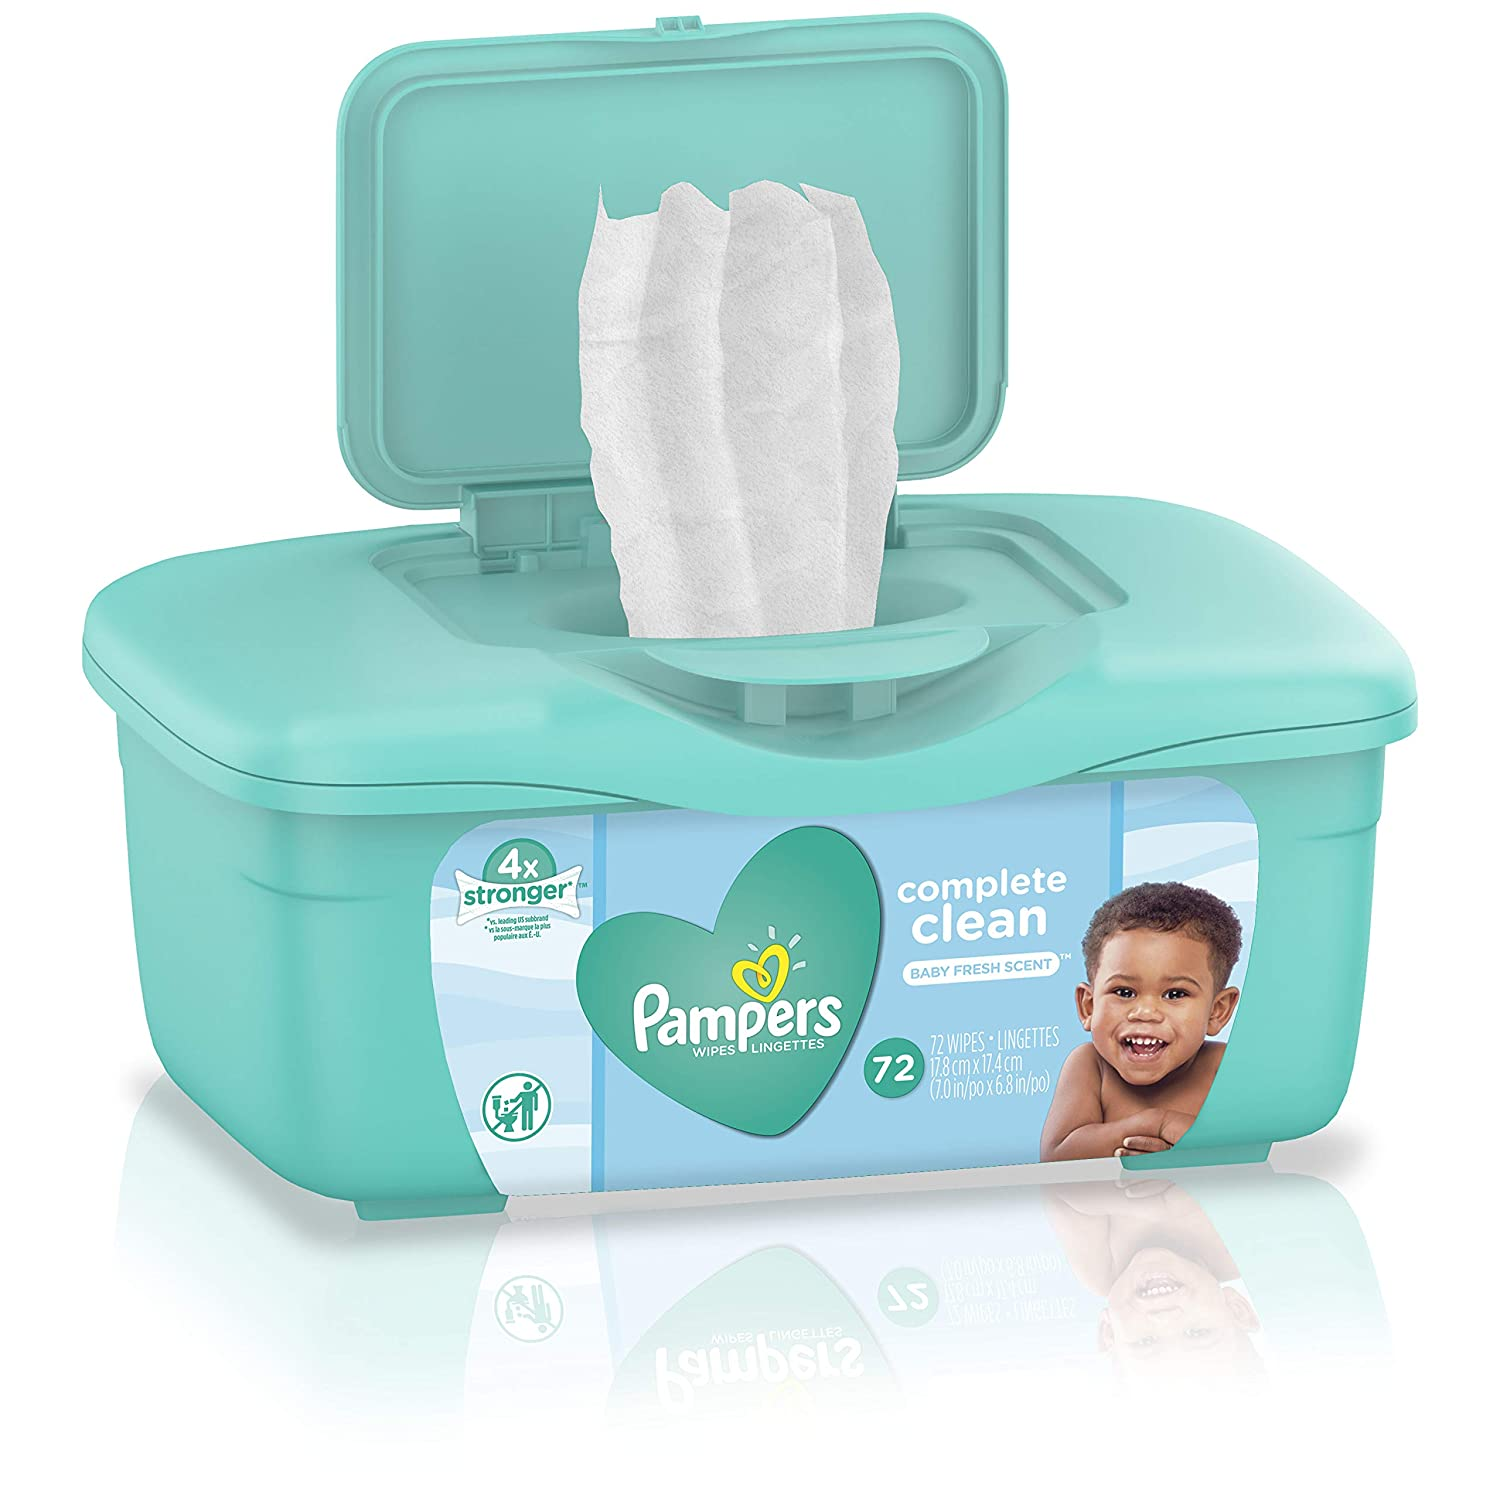 Pampers Baby Wipes Complete Clean Scented Tub, 72 ct (Pack of 8)